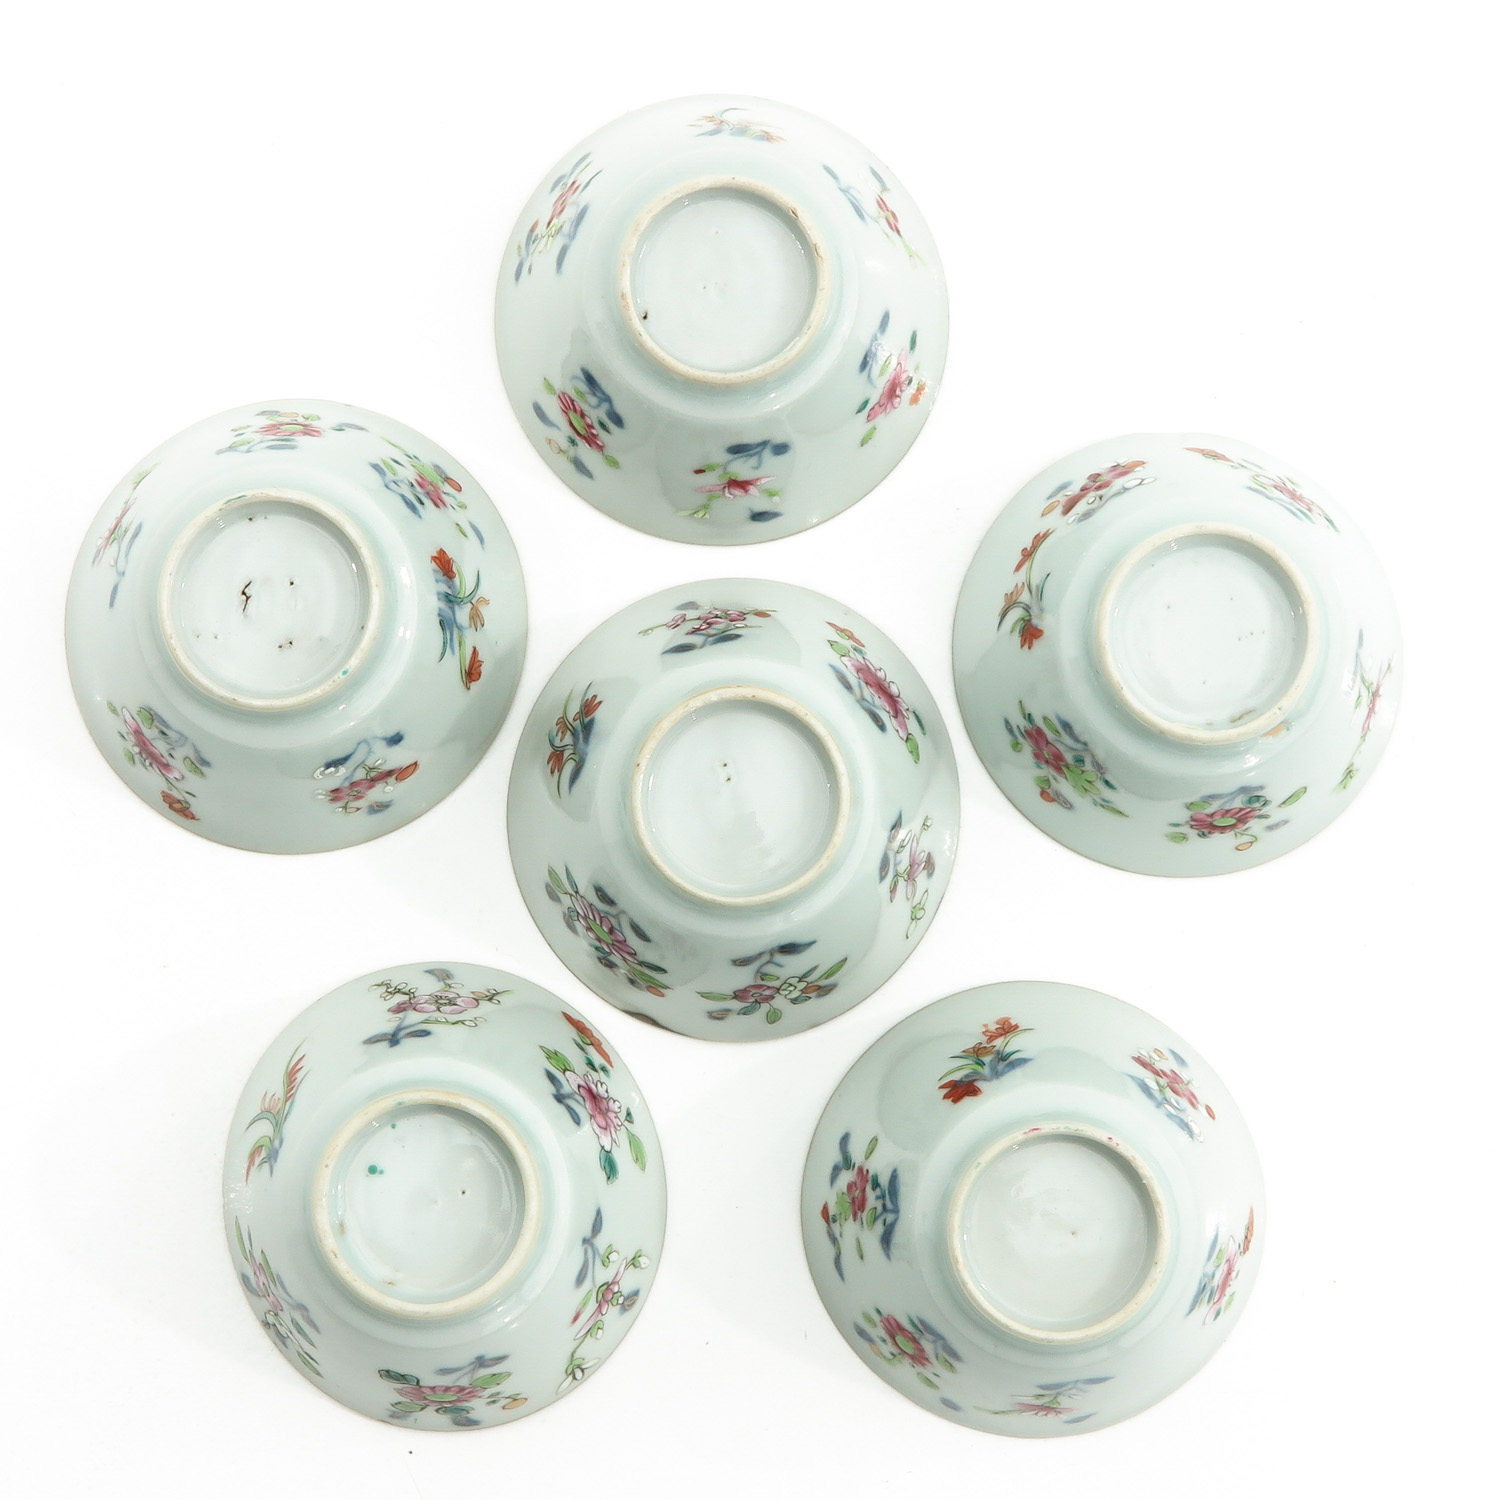 A Set of 6 Cups and Saucers - Image 6 of 10